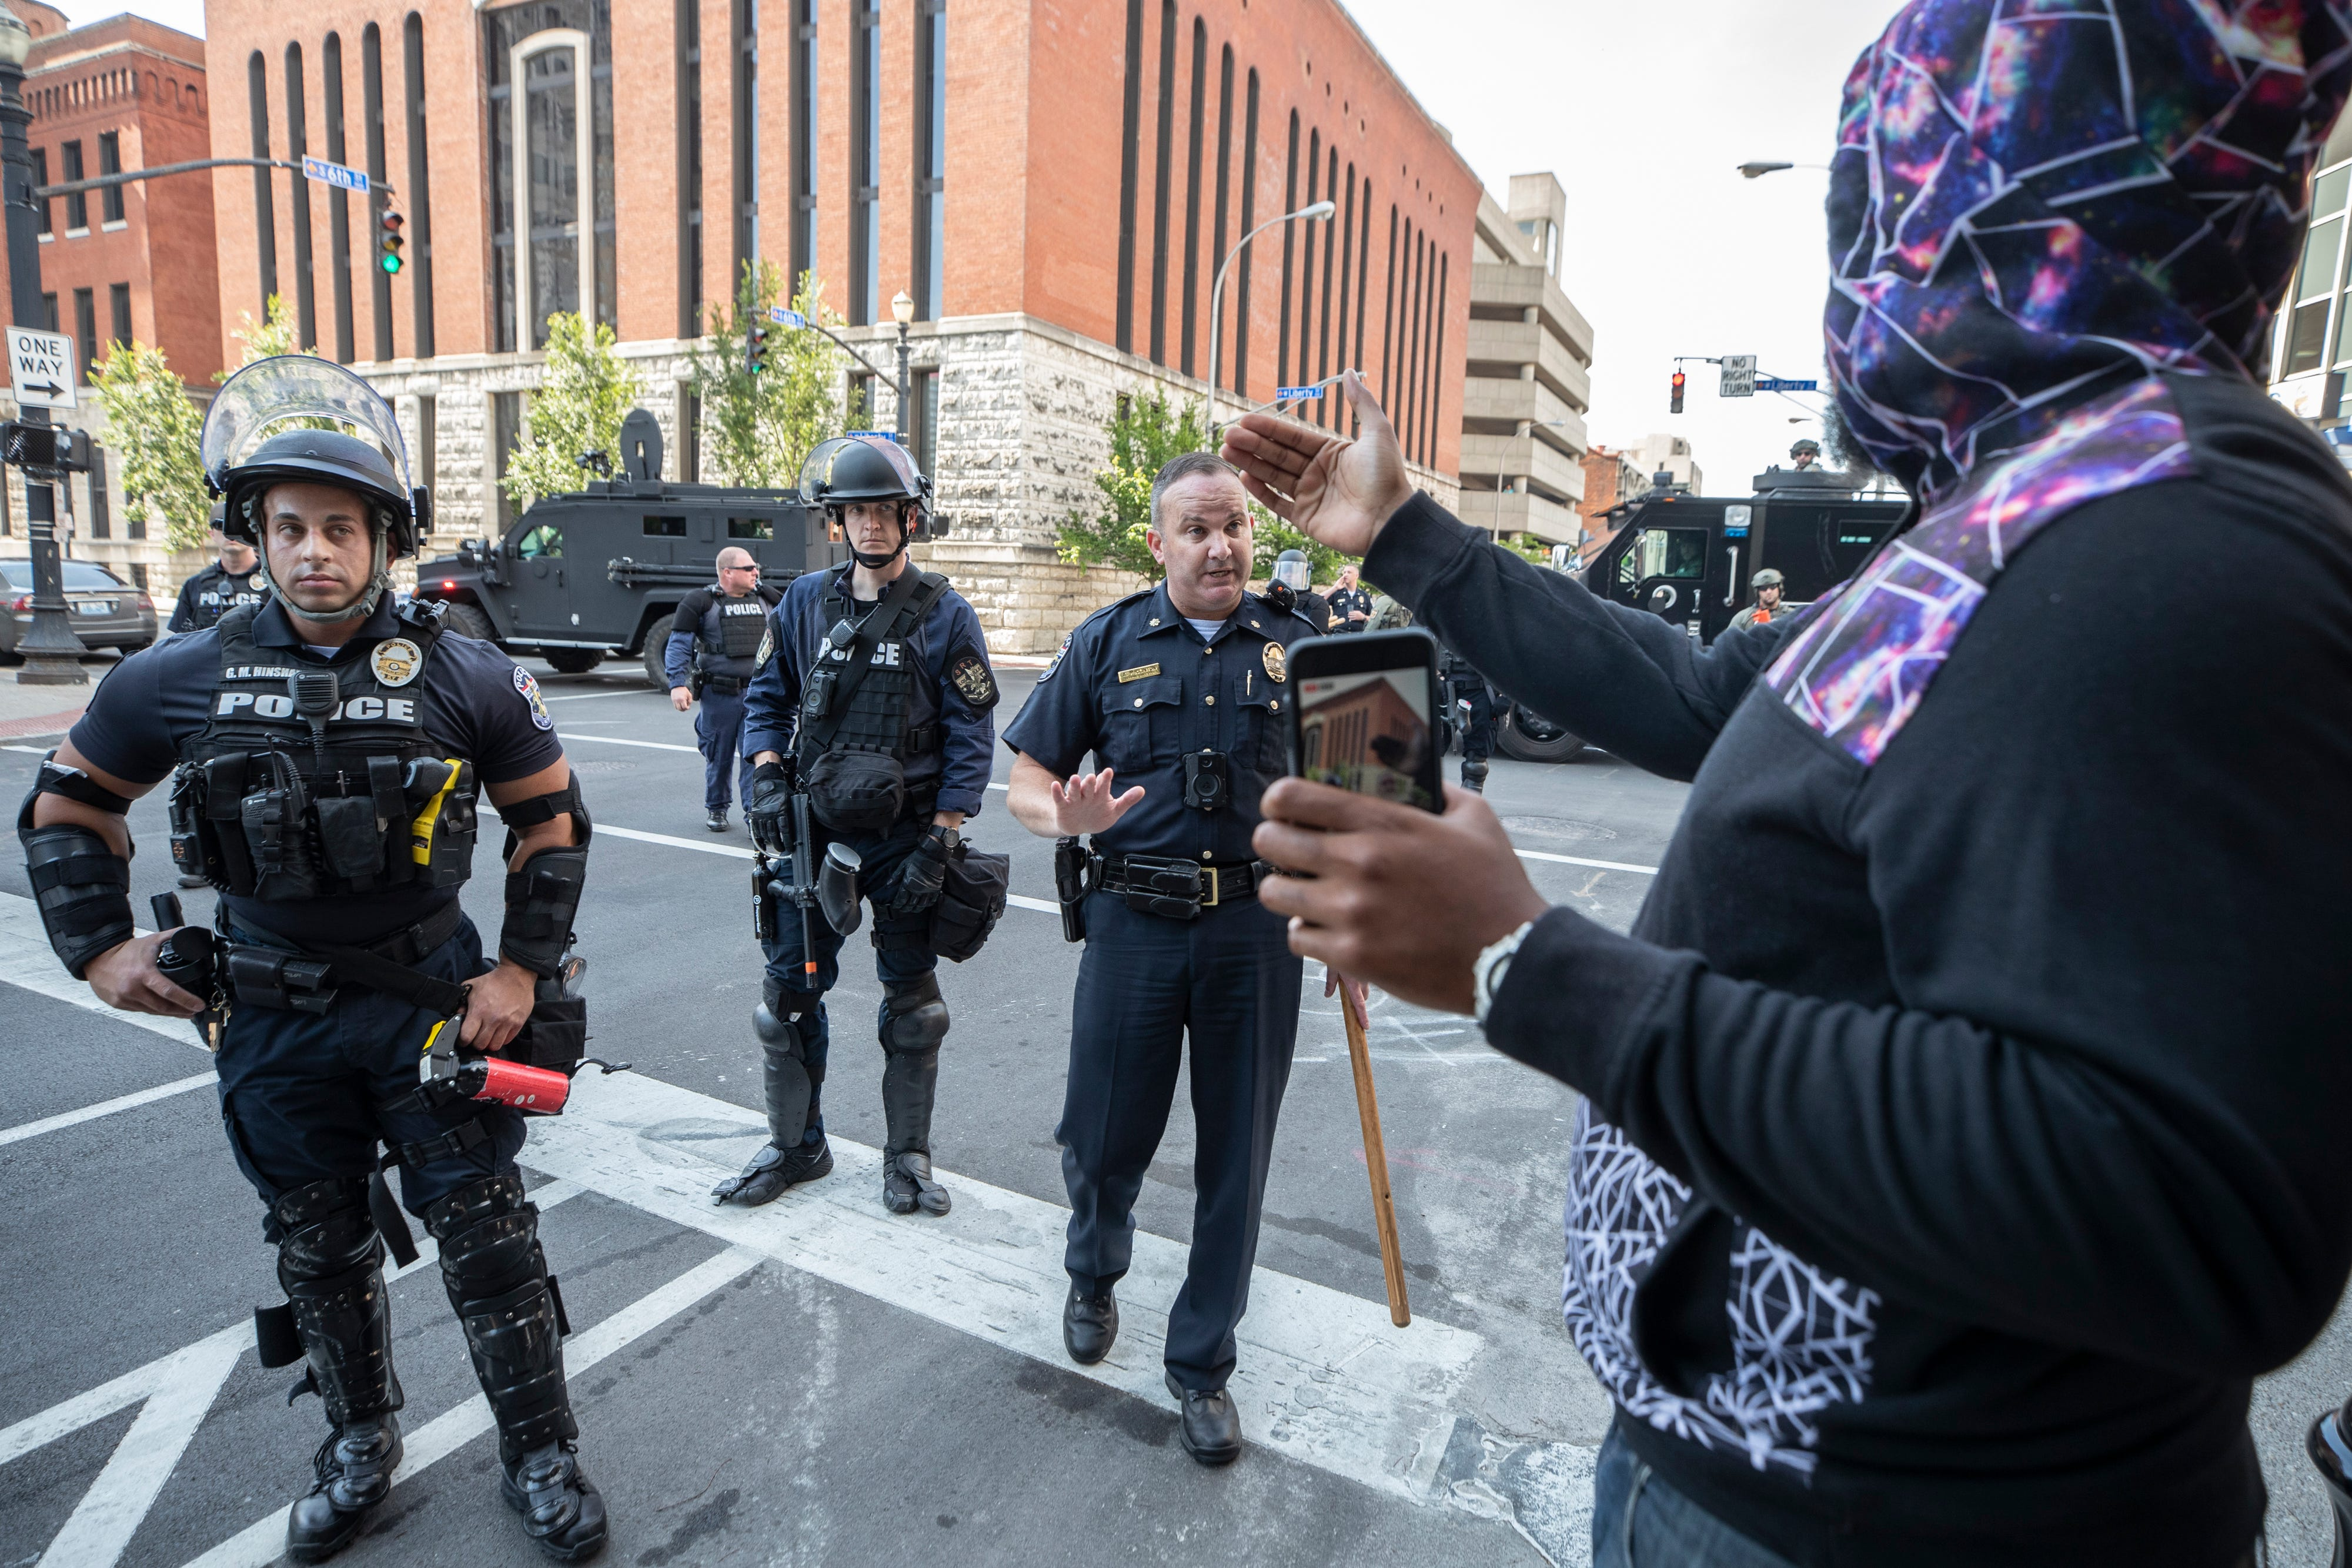 A protester talks with Louisville Metro police following a confrontation near Jefferson Square in downtown Louisville, Kentucky. June 17, 2020